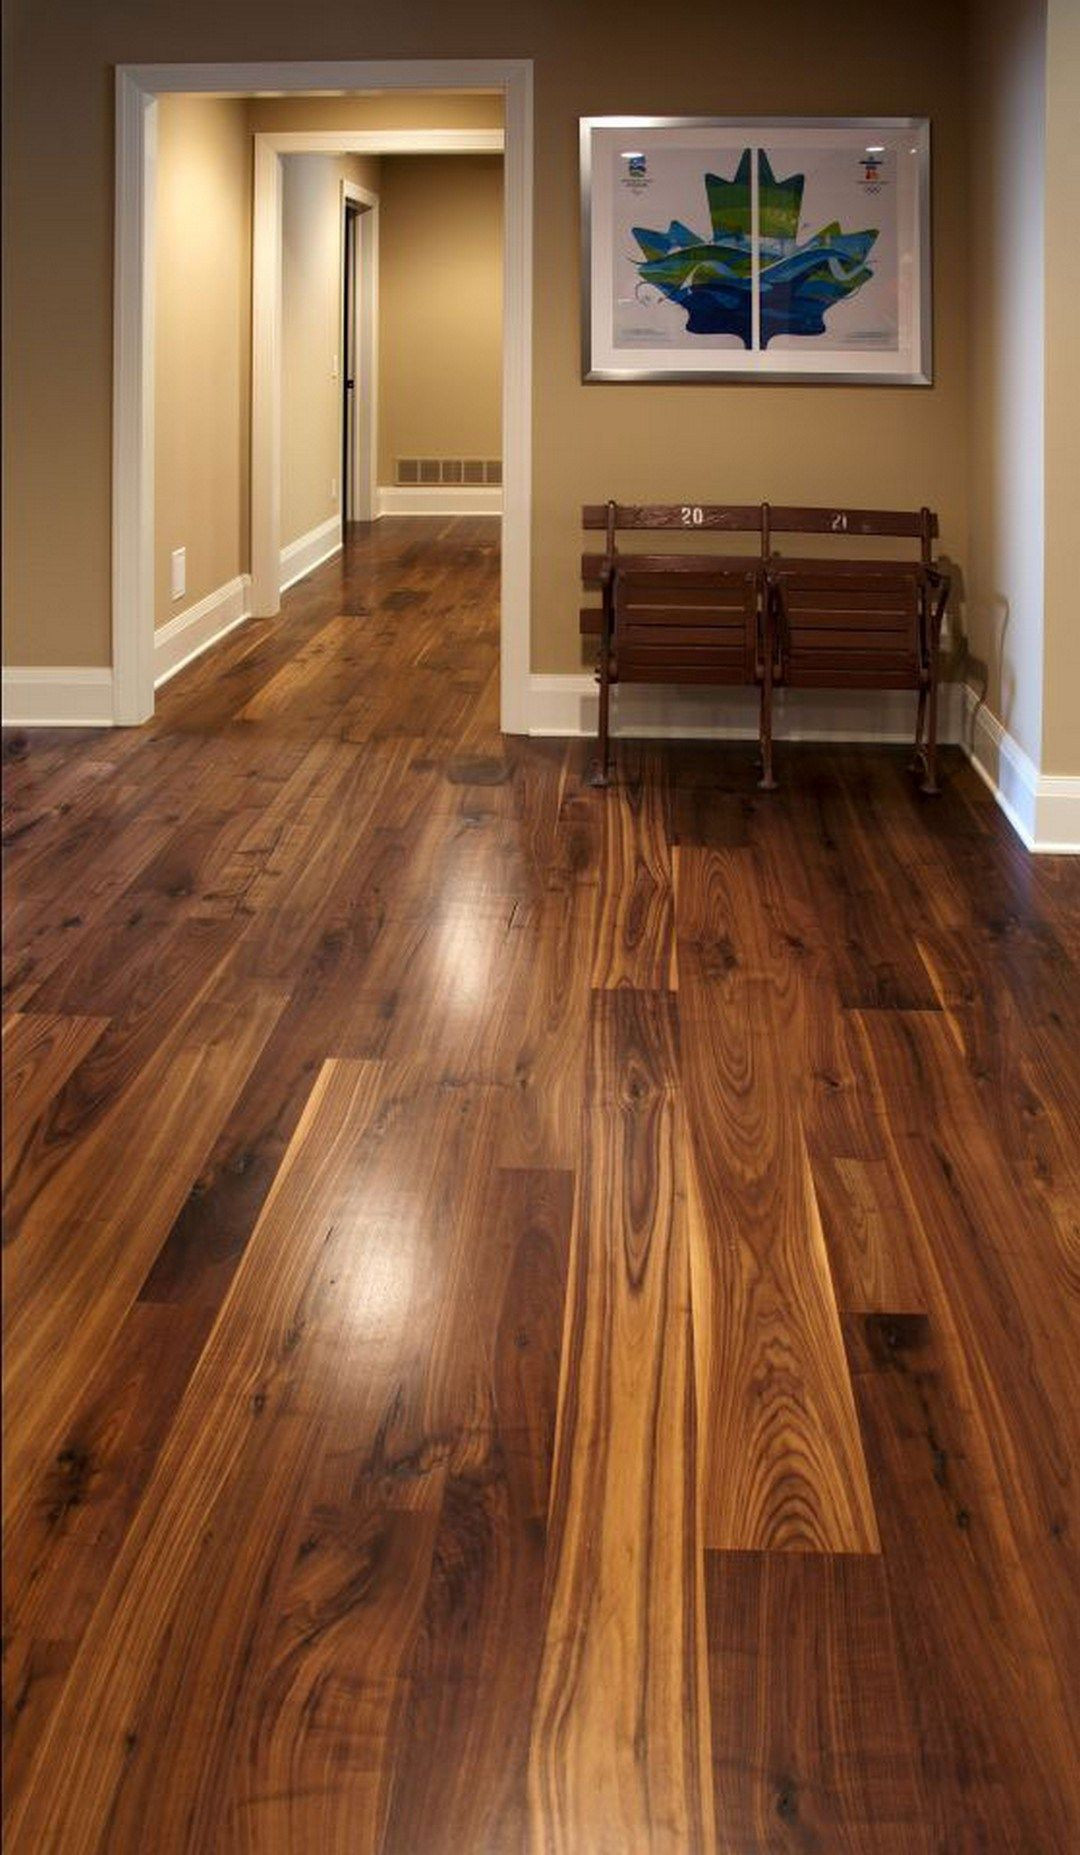 hardwood flooring types pros and cons of 60 perfect color wood flooring ideas for the home pinterest within perfect color wood flooring ideas 3